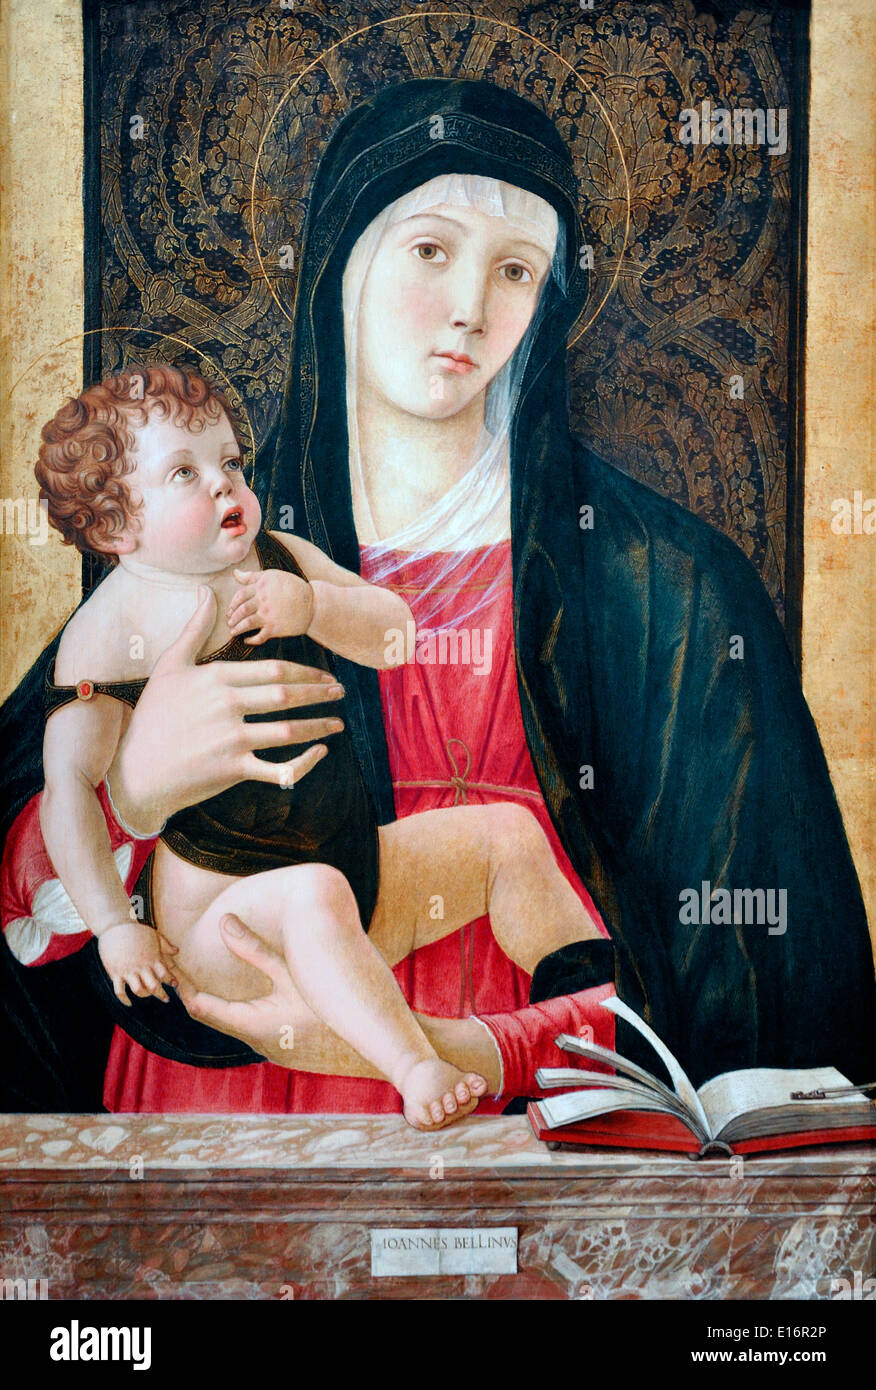 Madonna by Bellini, 1465 - Stock Image